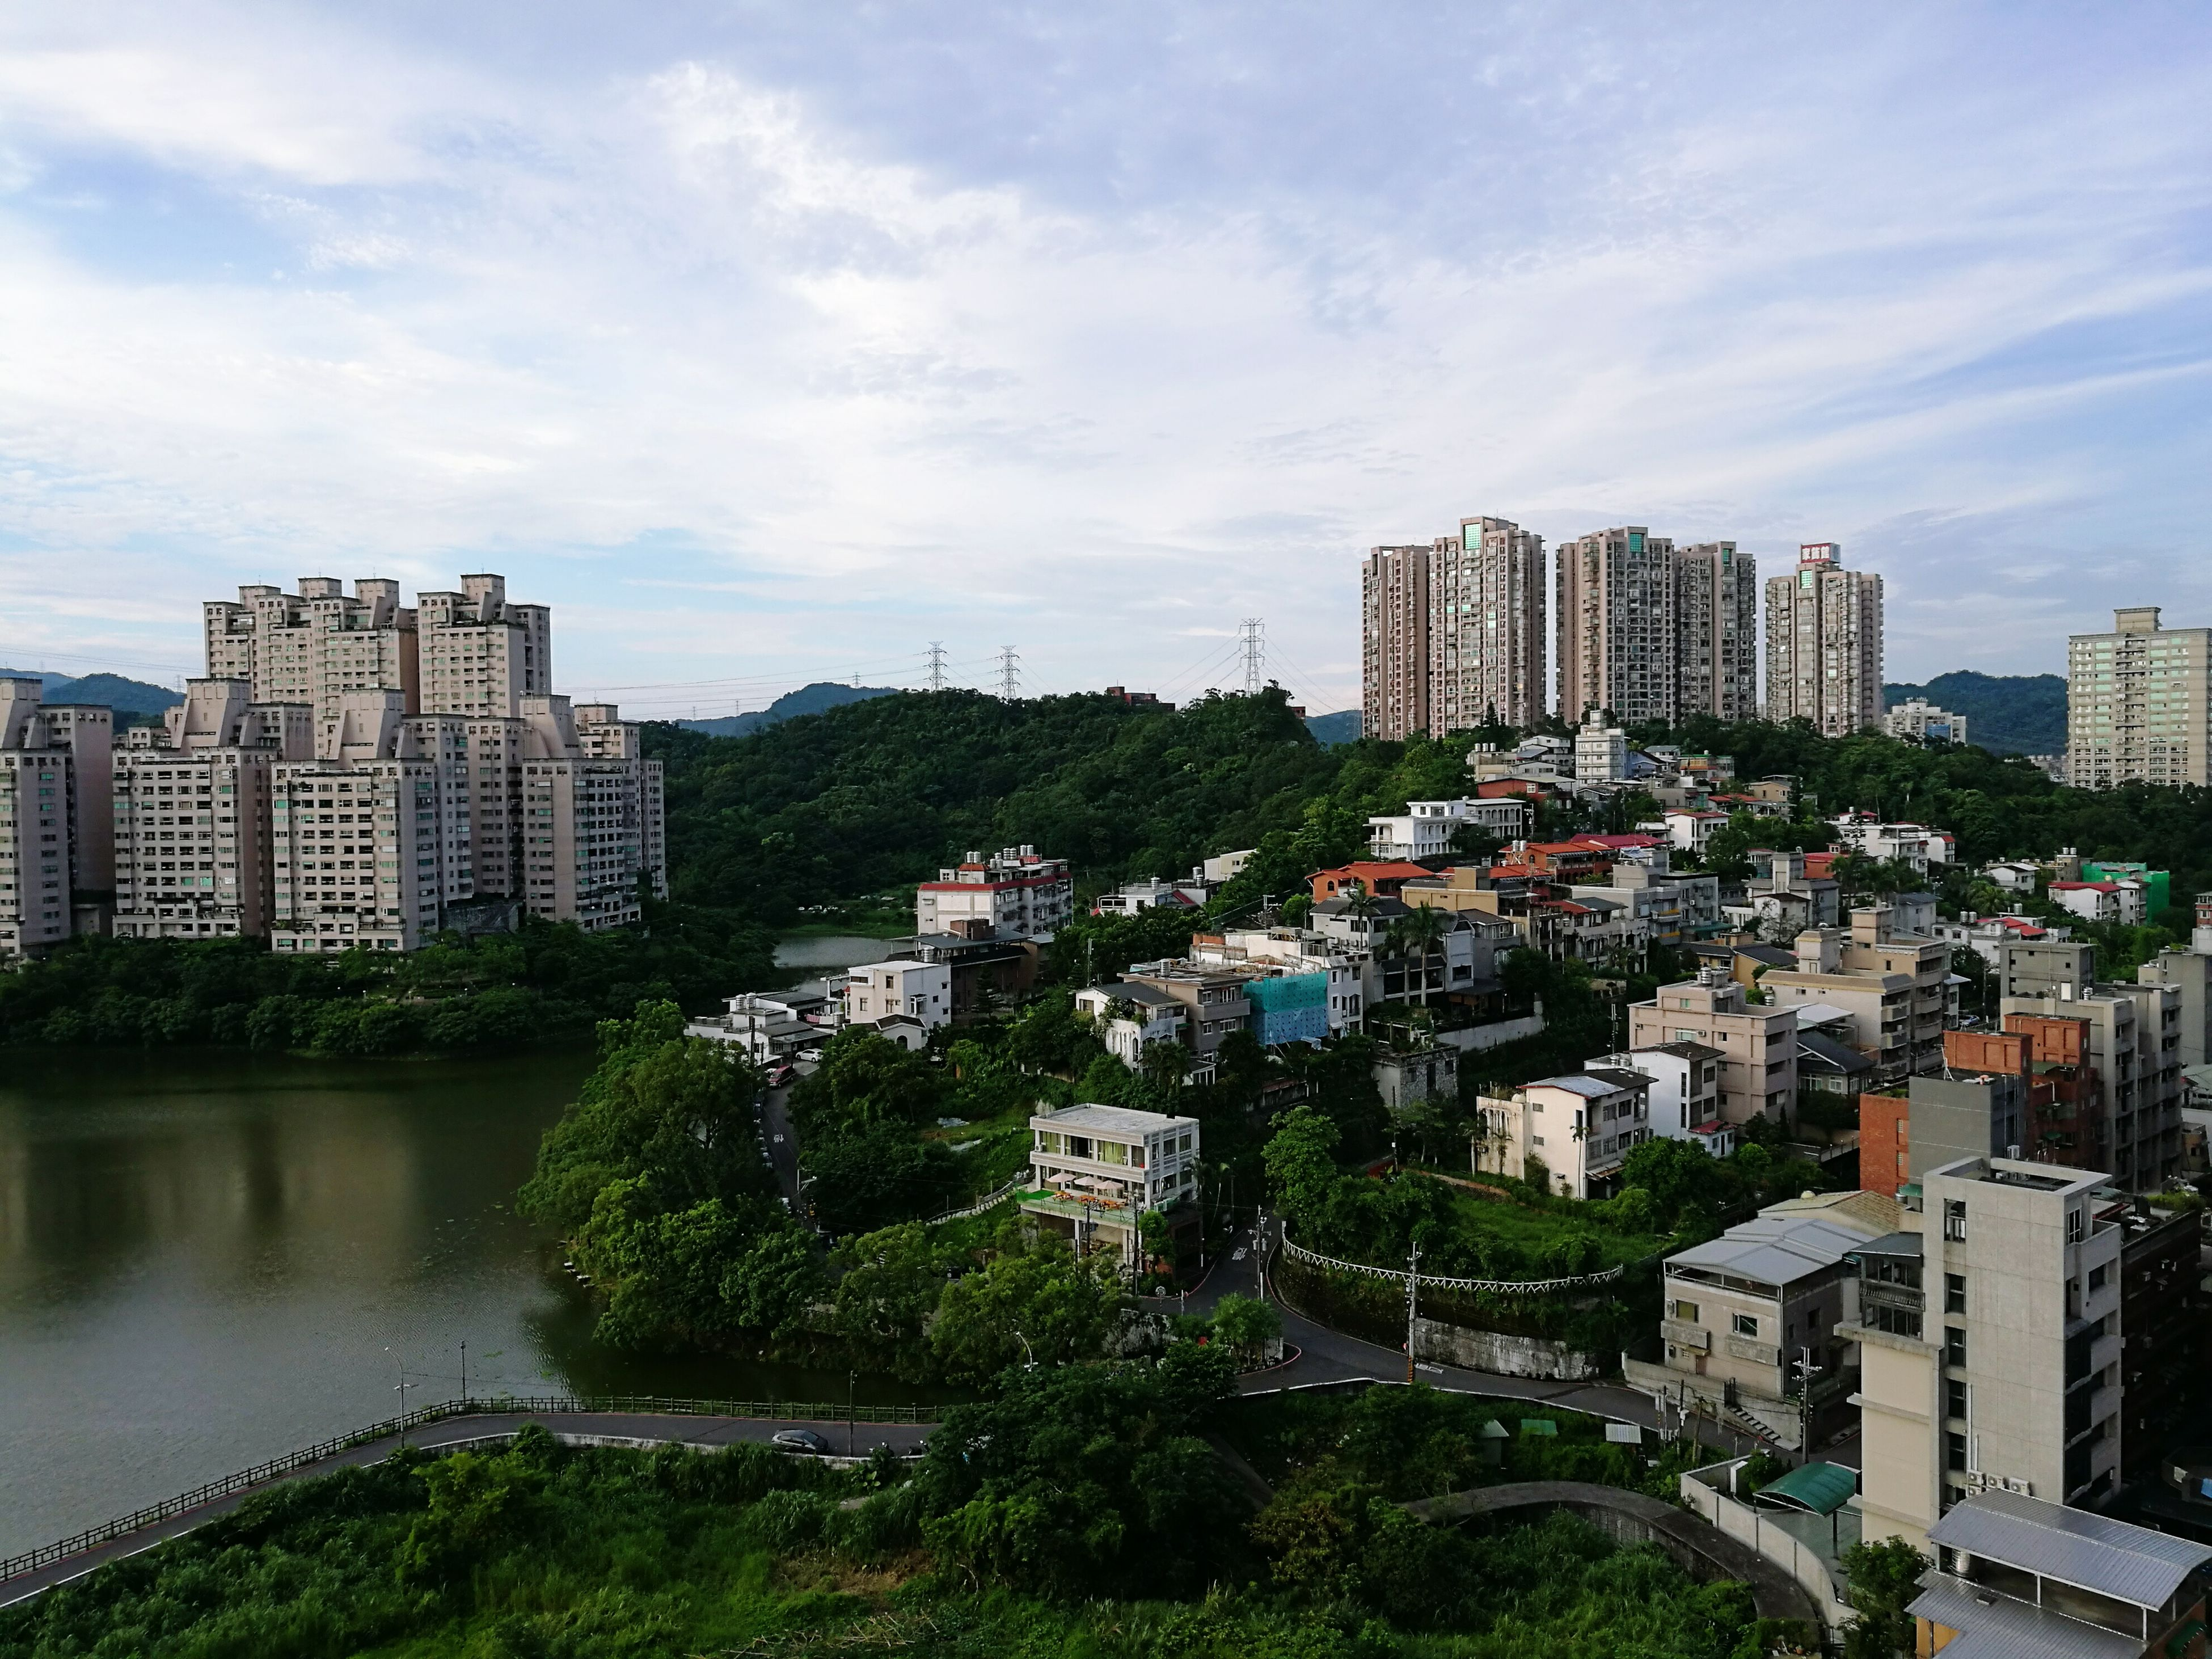 building exterior, architecture, built structure, city, sky, cityscape, tree, water, cloud - sky, residential district, residential building, skyscraper, high angle view, residential structure, river, cloud, crowded, city life, cloudy, growth